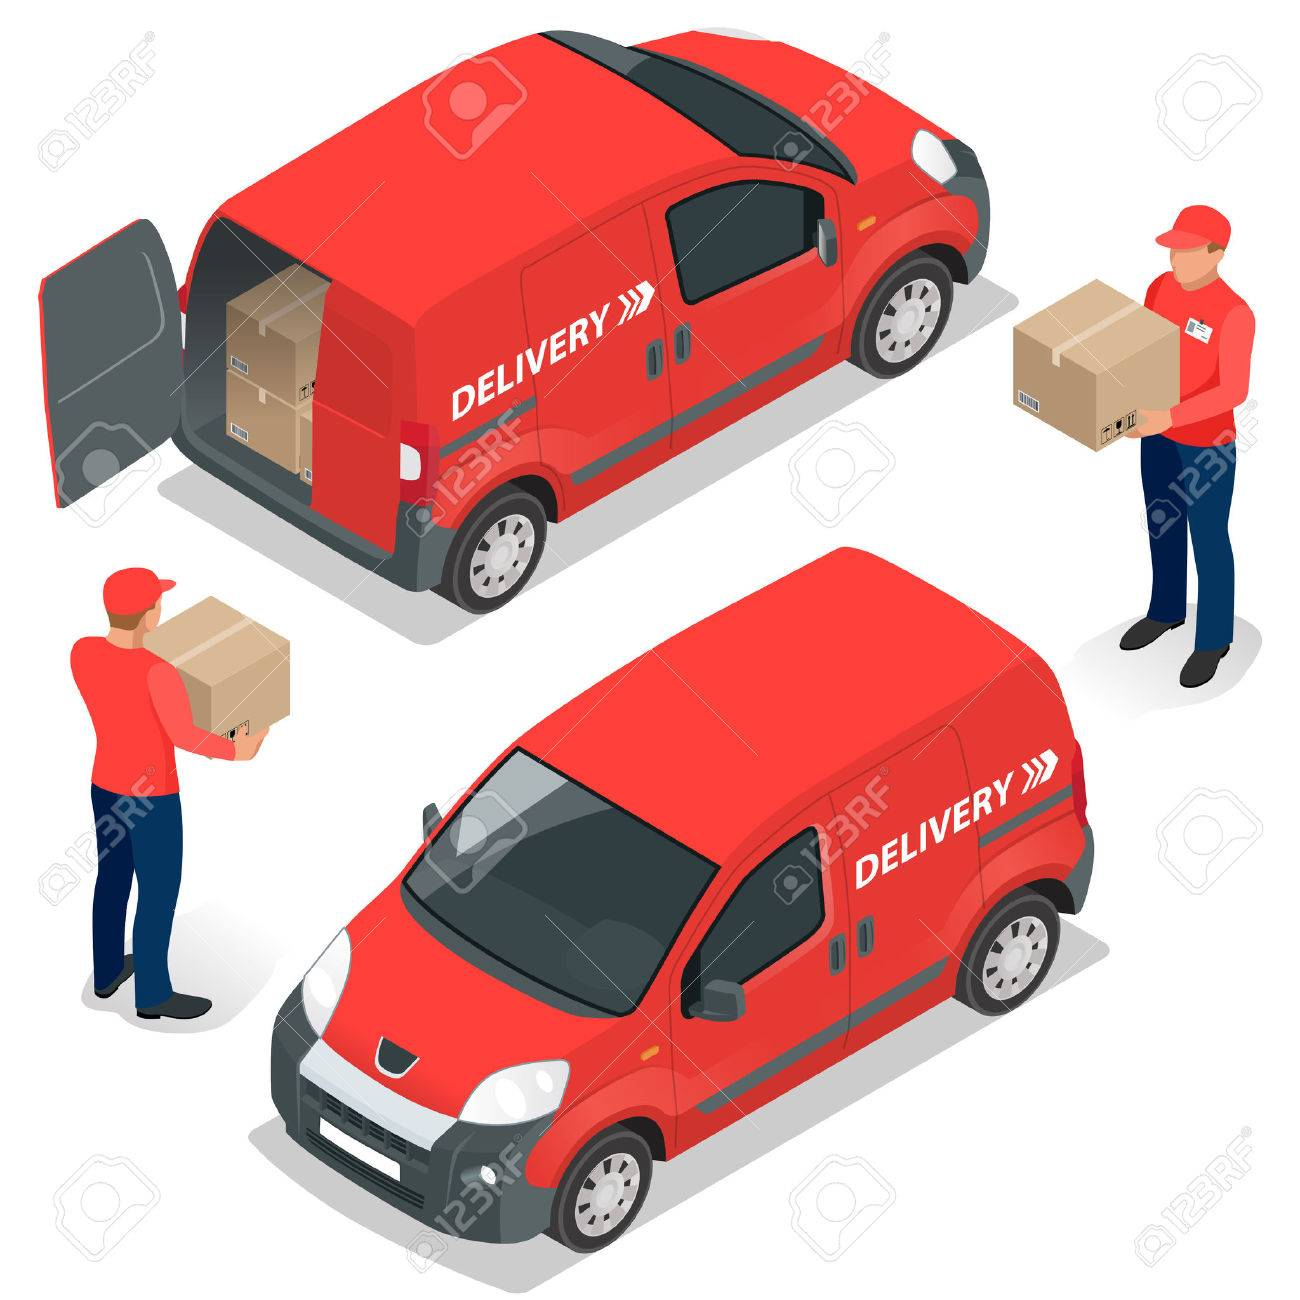 Free delivery Flat vector isometric illustration - 52362050